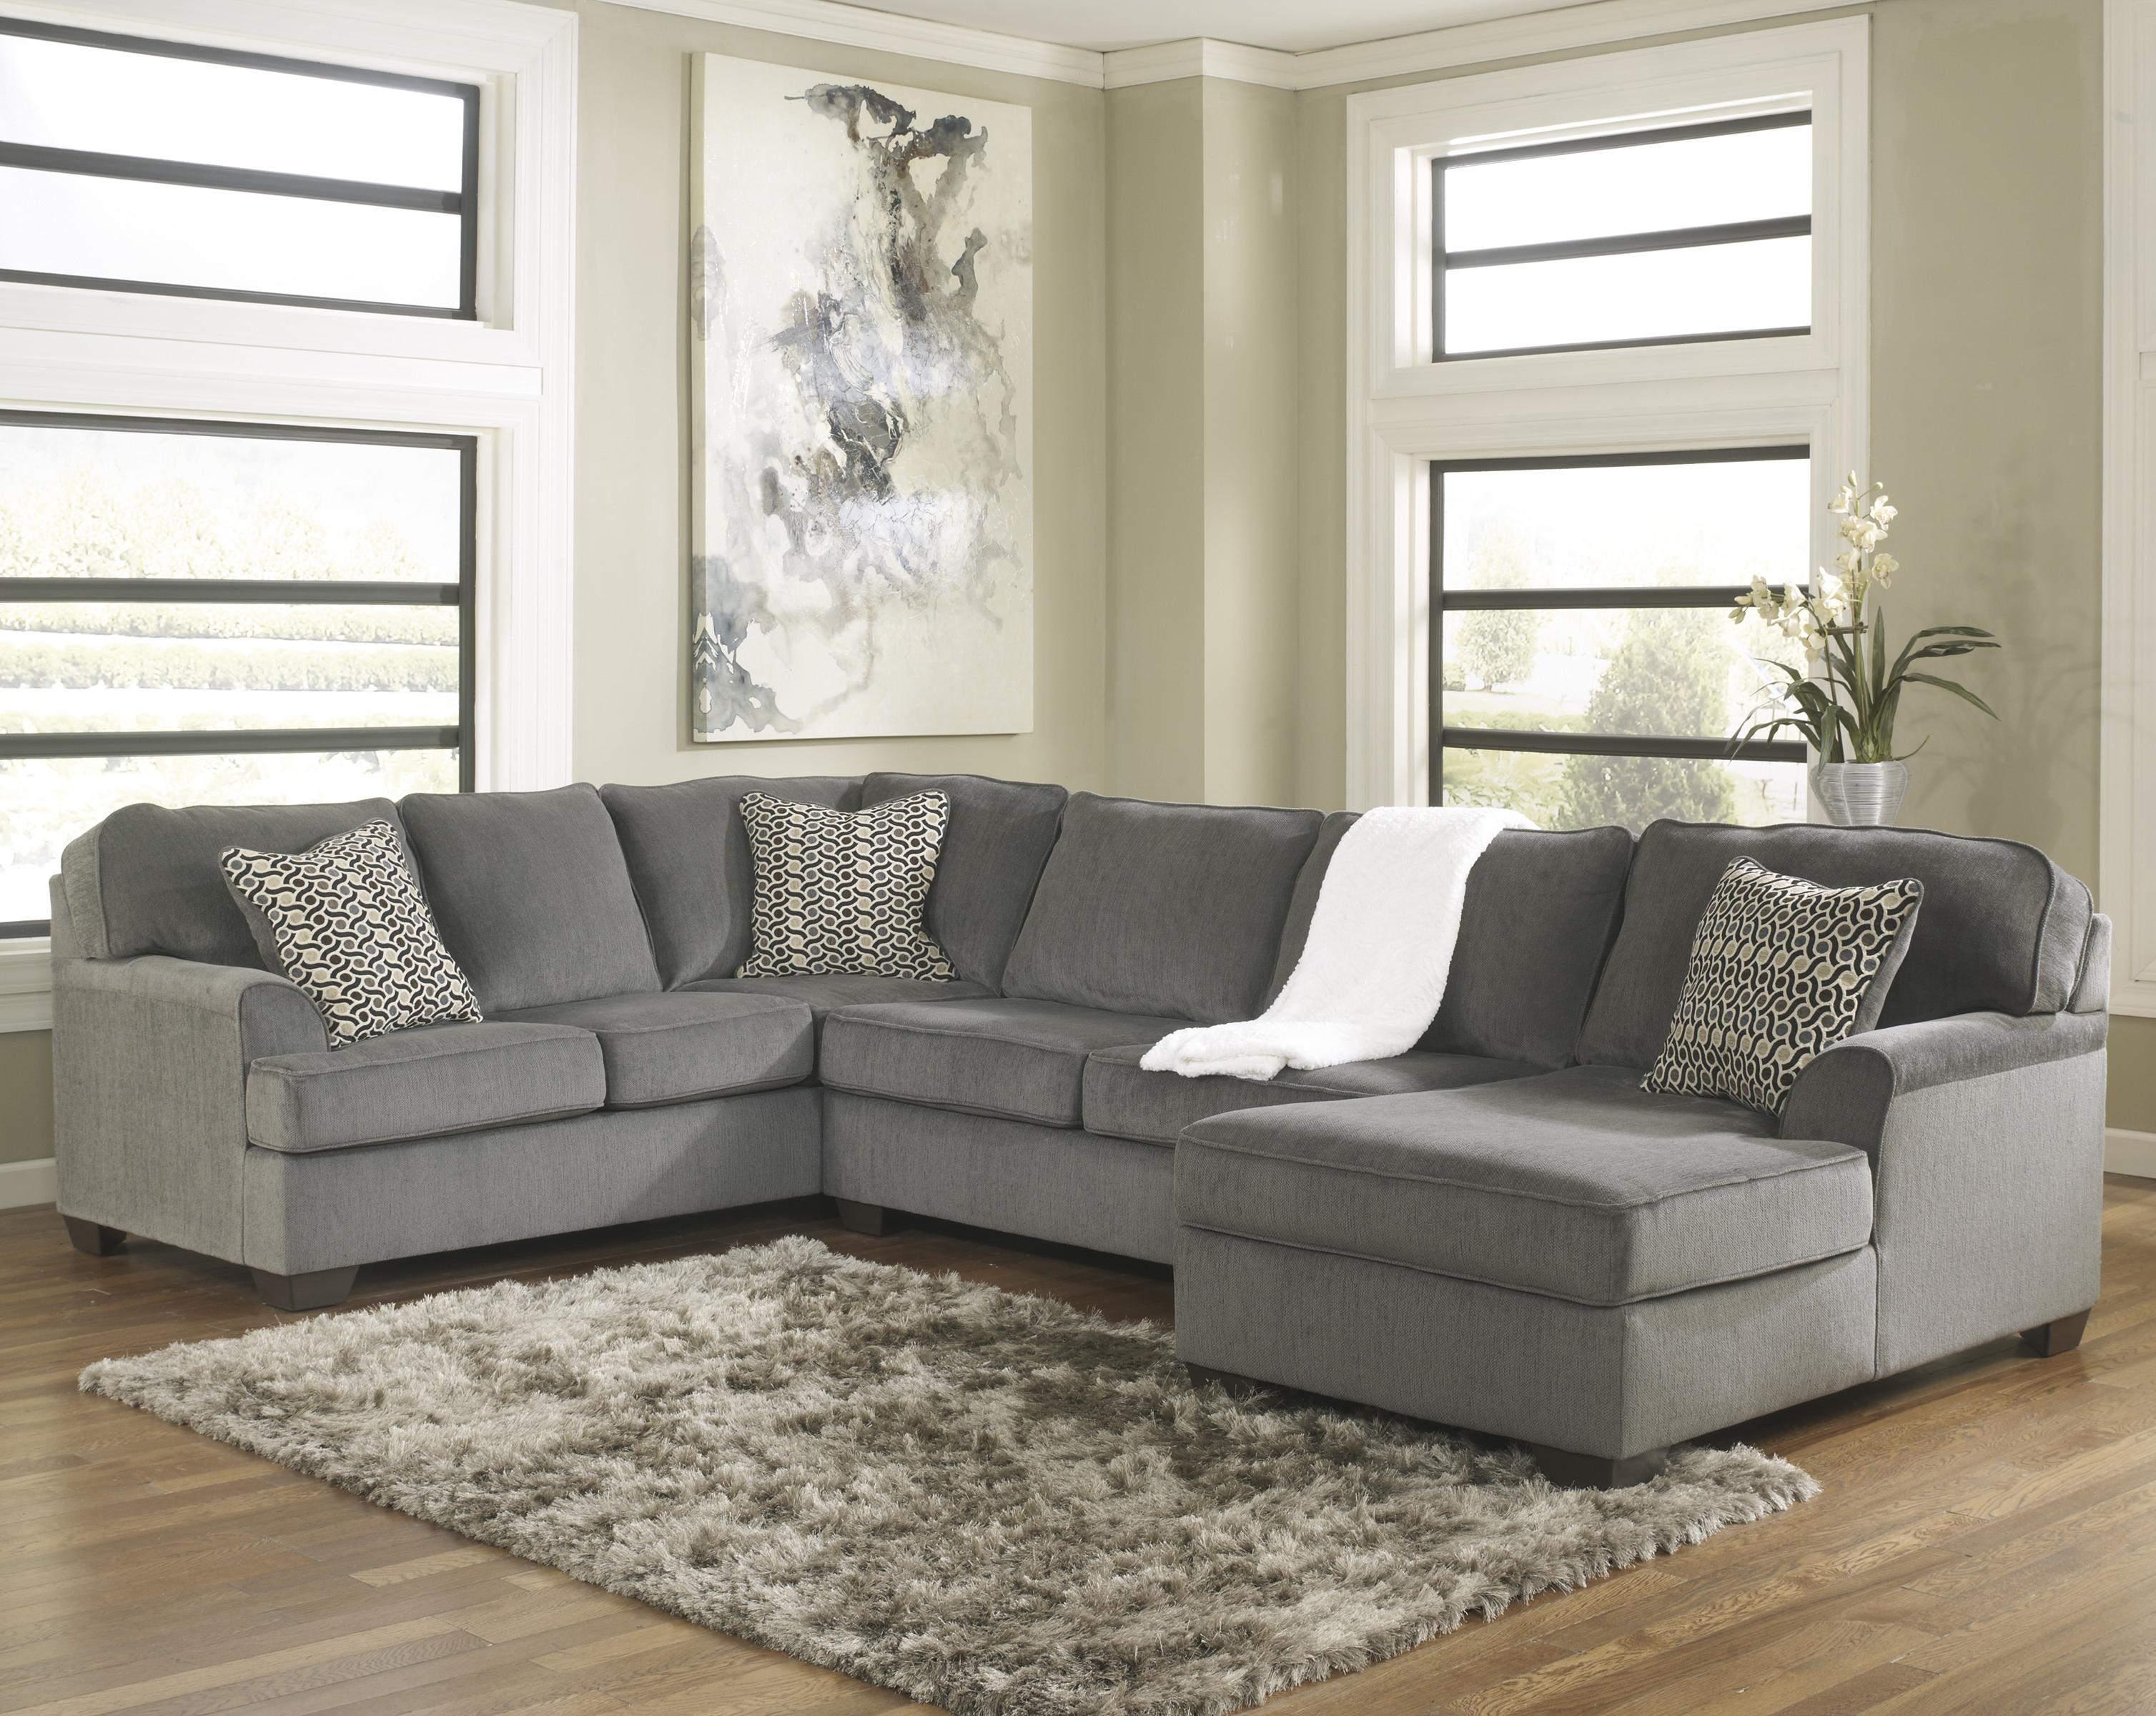 ashley furniture loric smoke contemporary 3 piece sectional with right chaise john v schultz. Black Bedroom Furniture Sets. Home Design Ideas